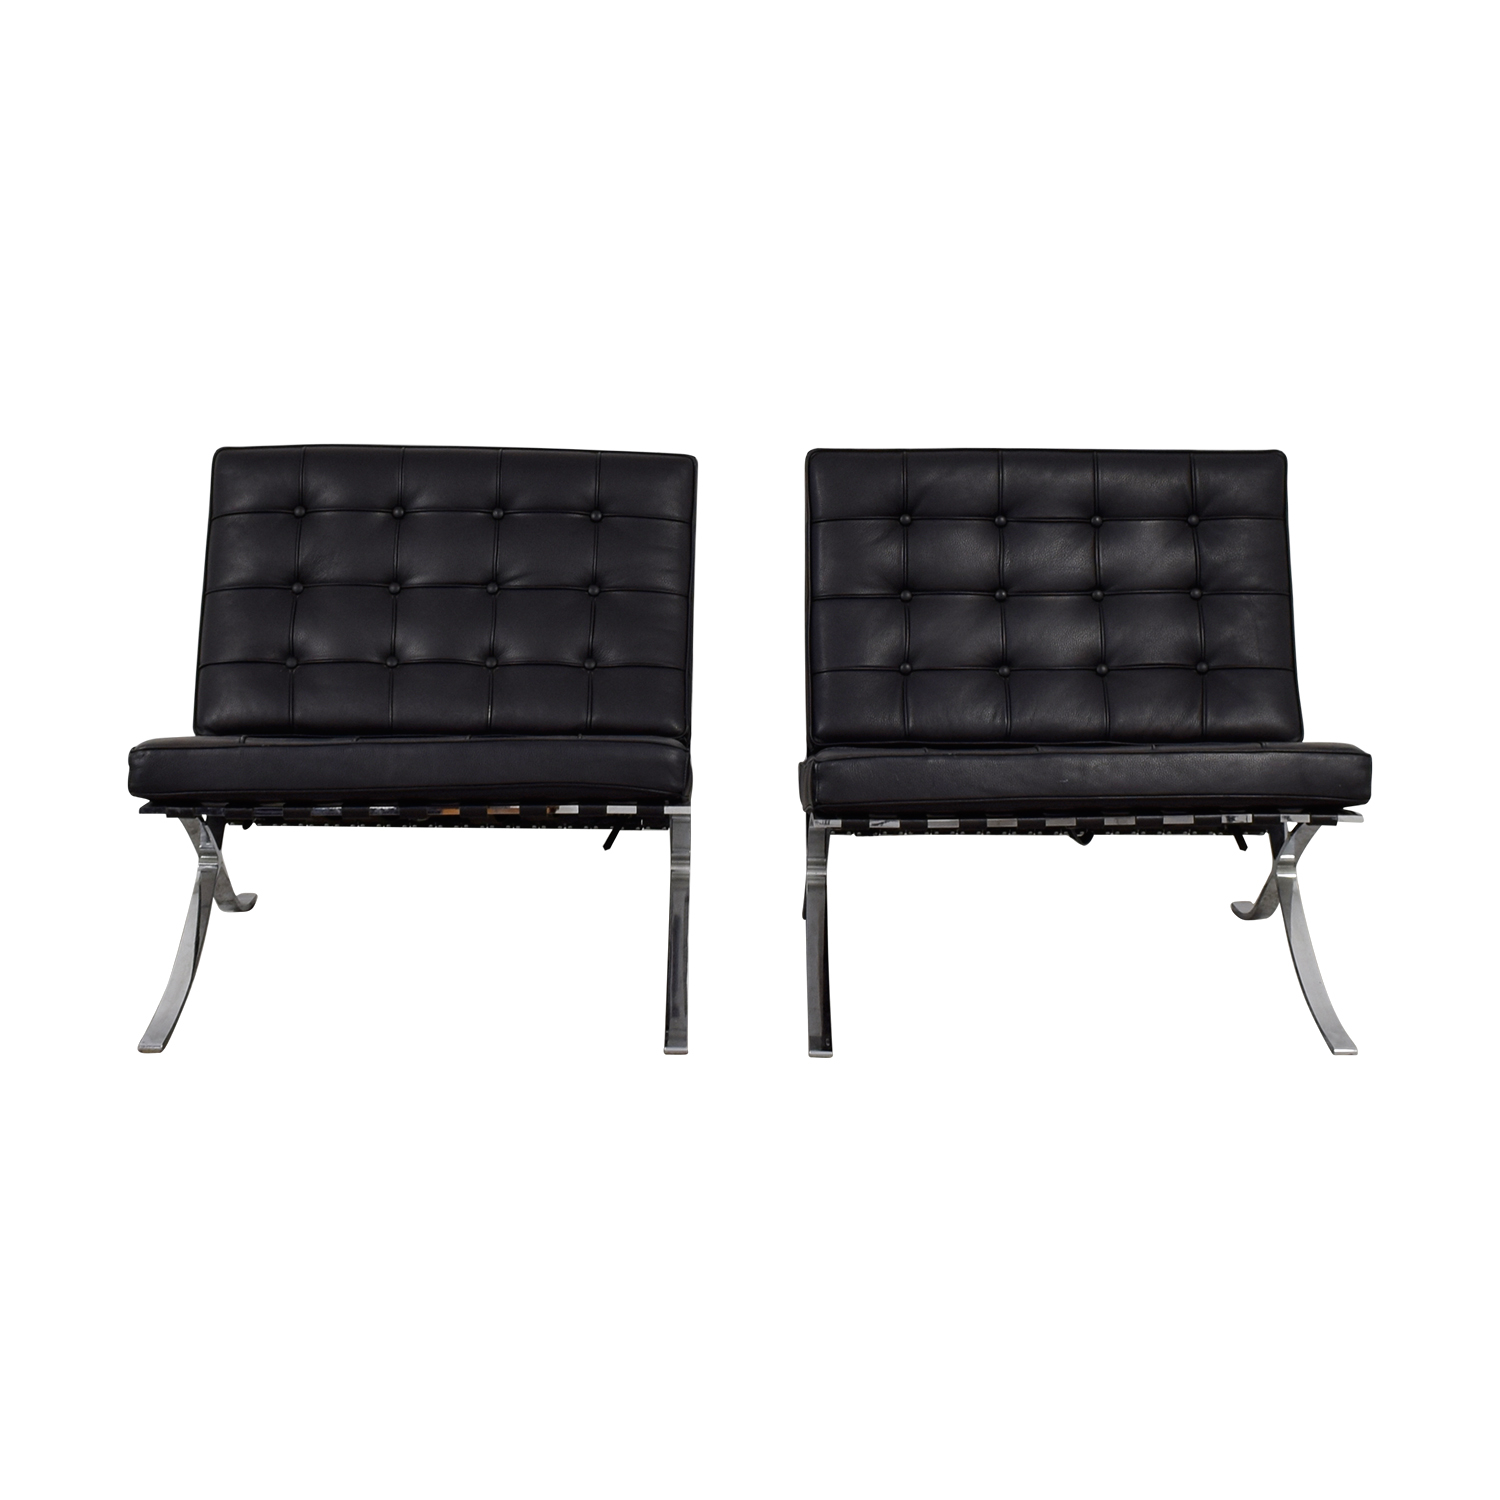 Barcelona Chairs For Sale 90 Off Black And Chrome Tufted Barcelona Style Accent Chairs Chairs